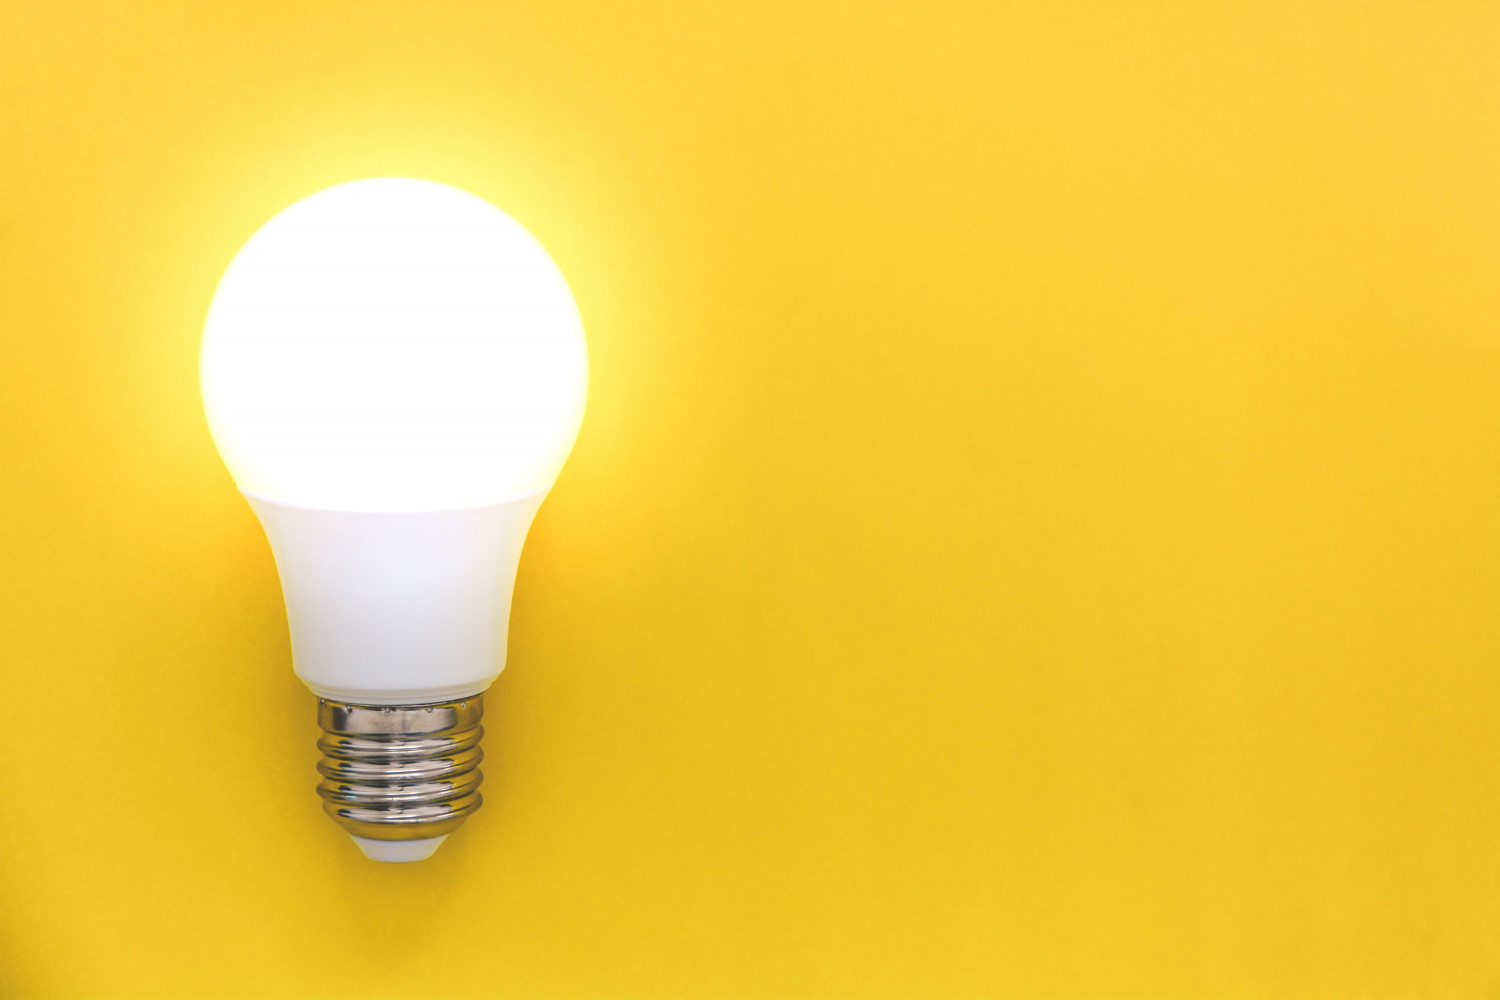 led-light-bulb-yellow-background-concept-ideas-creativity-innovation-saving-energy-copy-space-top-view-flat-lay